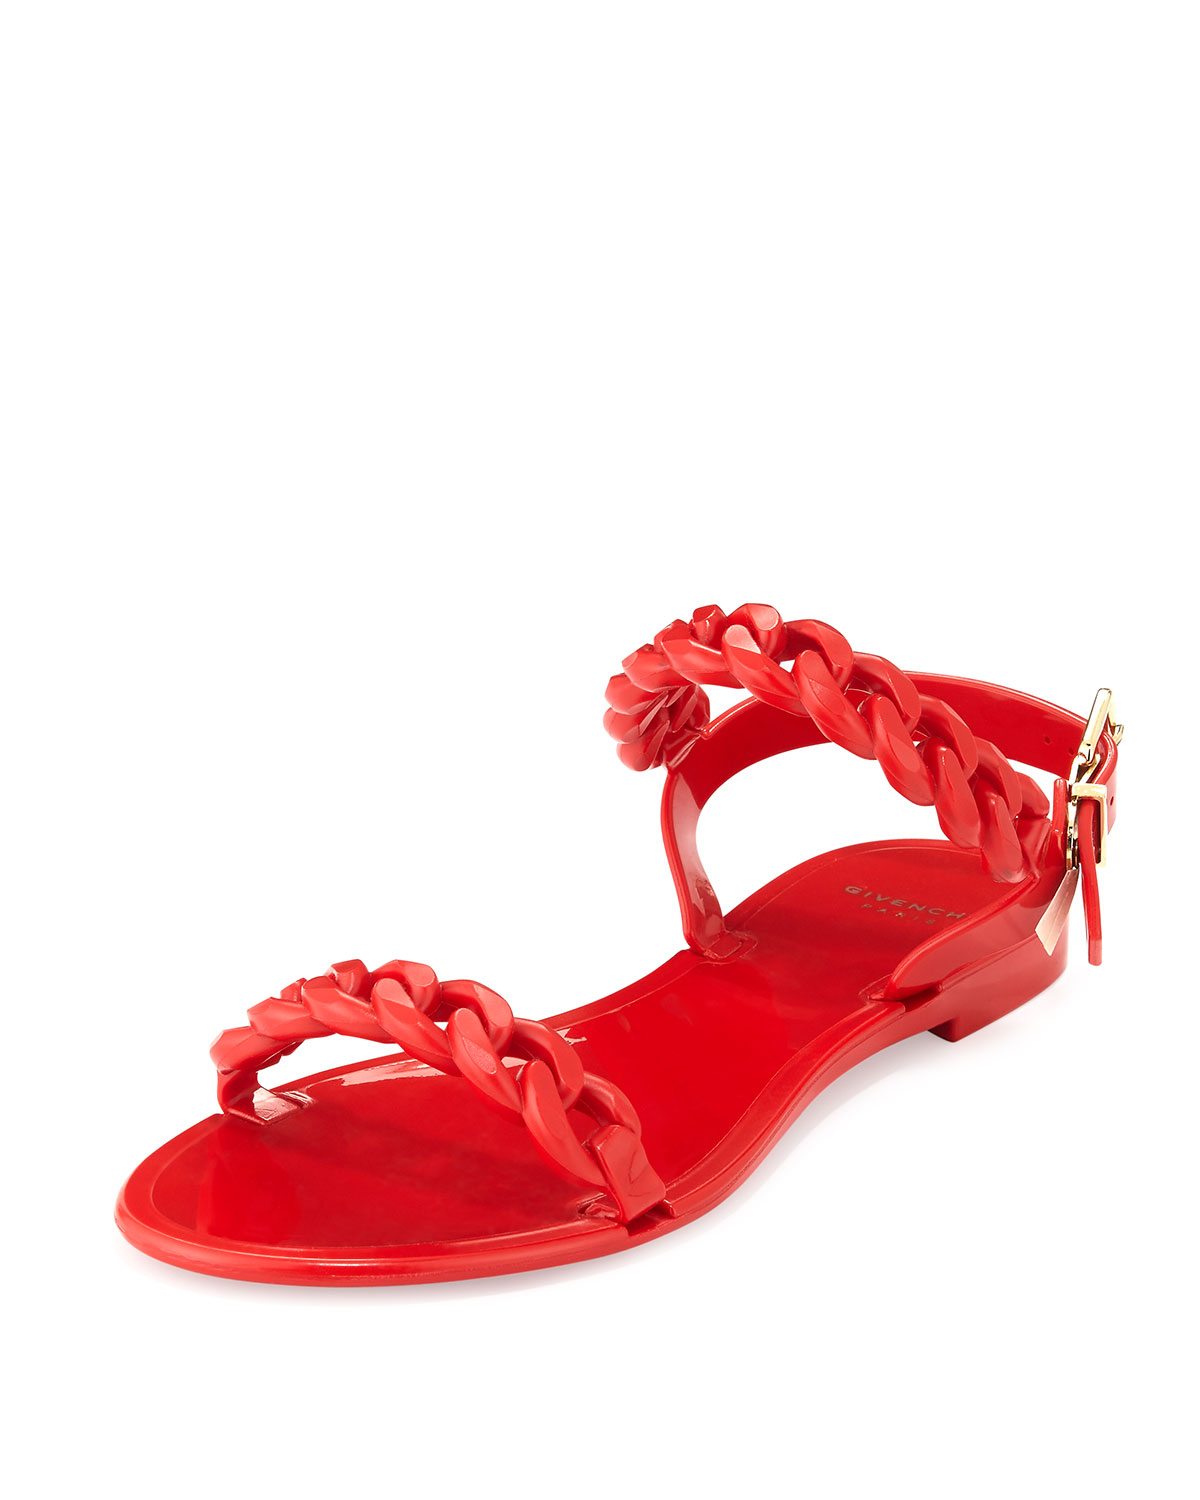 4ad43a99575f Givenchy Jelly Chain-Link Flat Sandal